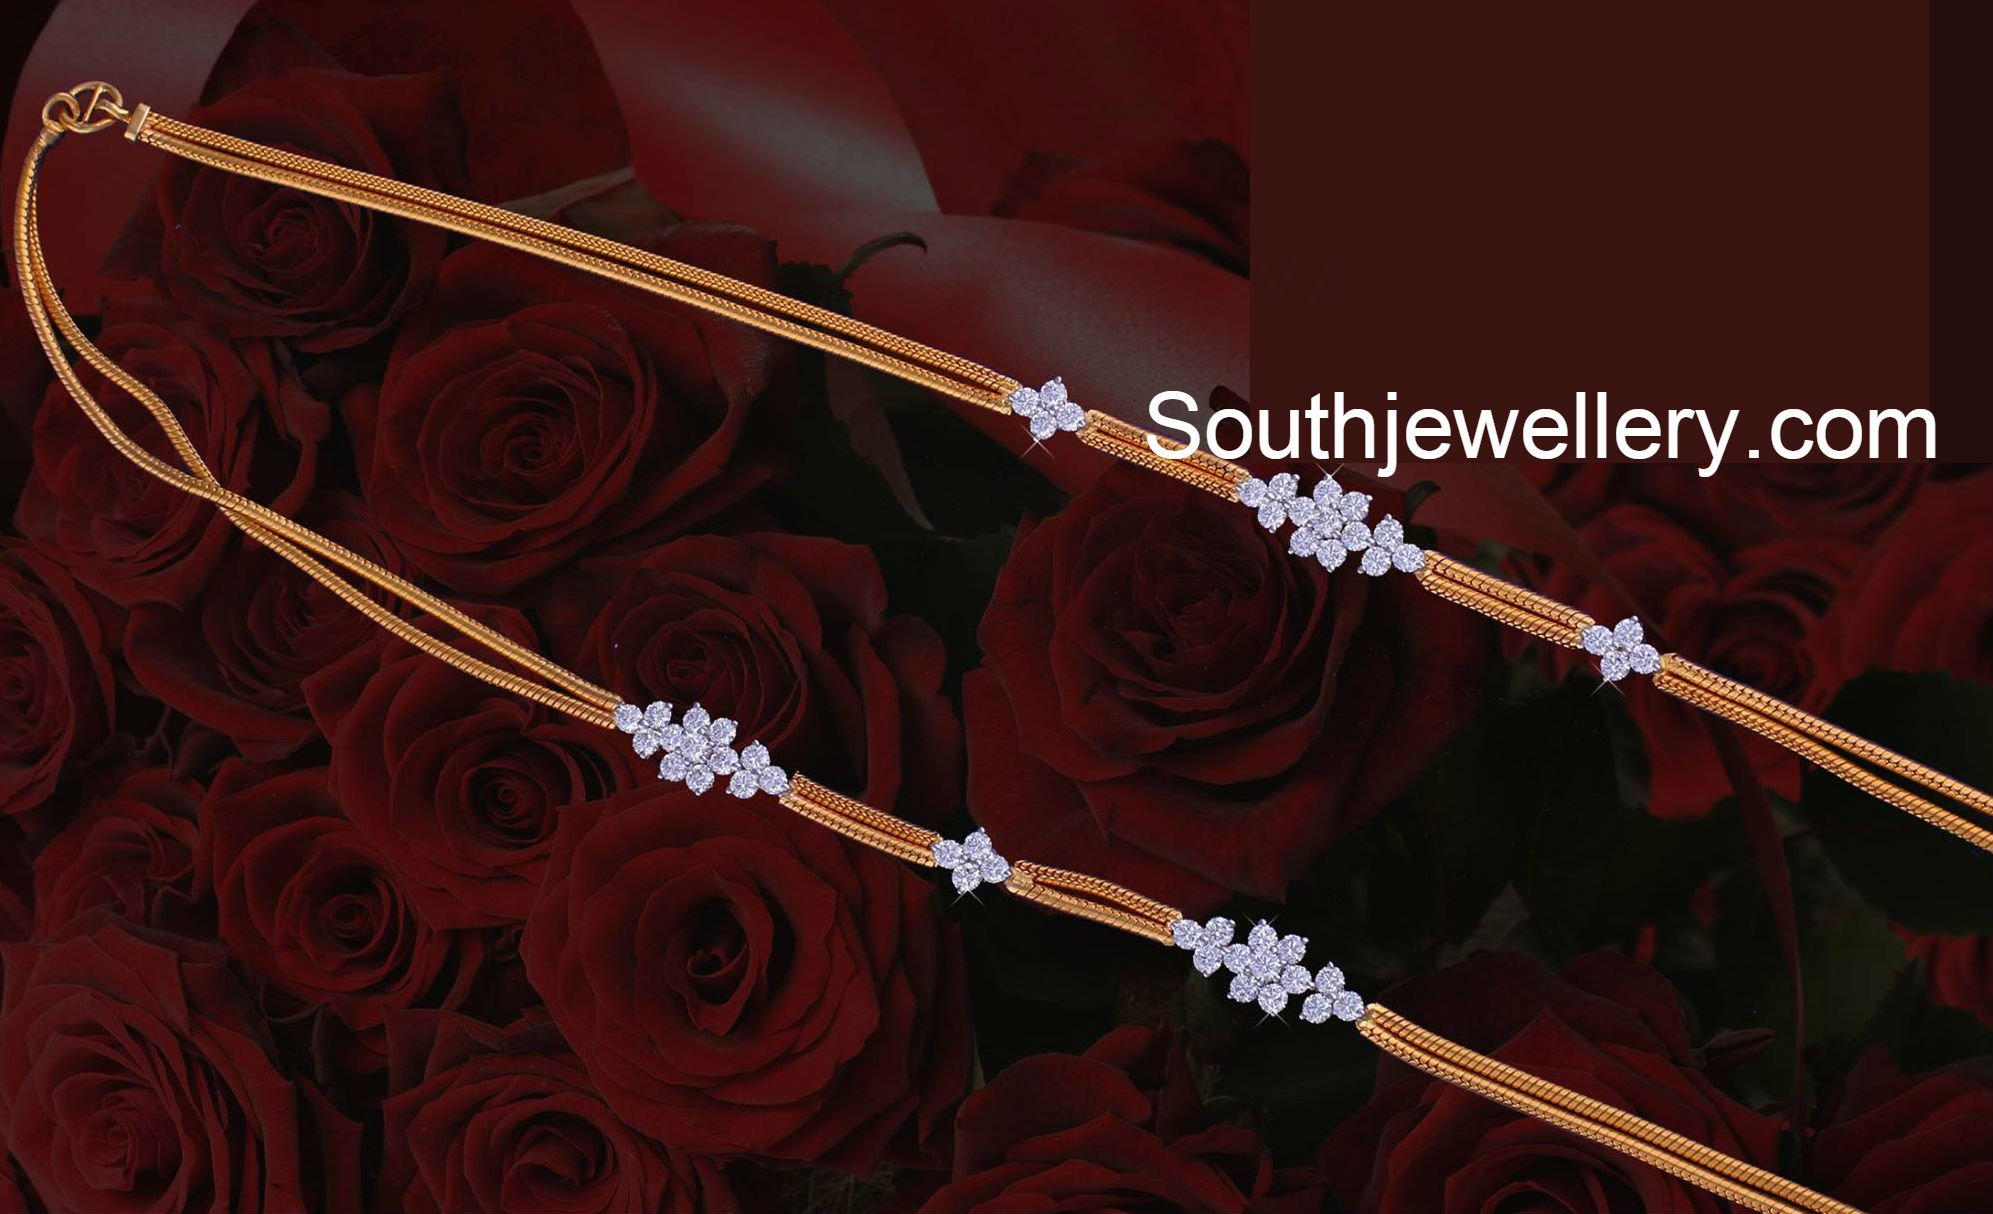 Diamond kasulaperu with pendant - Thali Chain Designs Latest Jewelry Designs Jewellery Designs